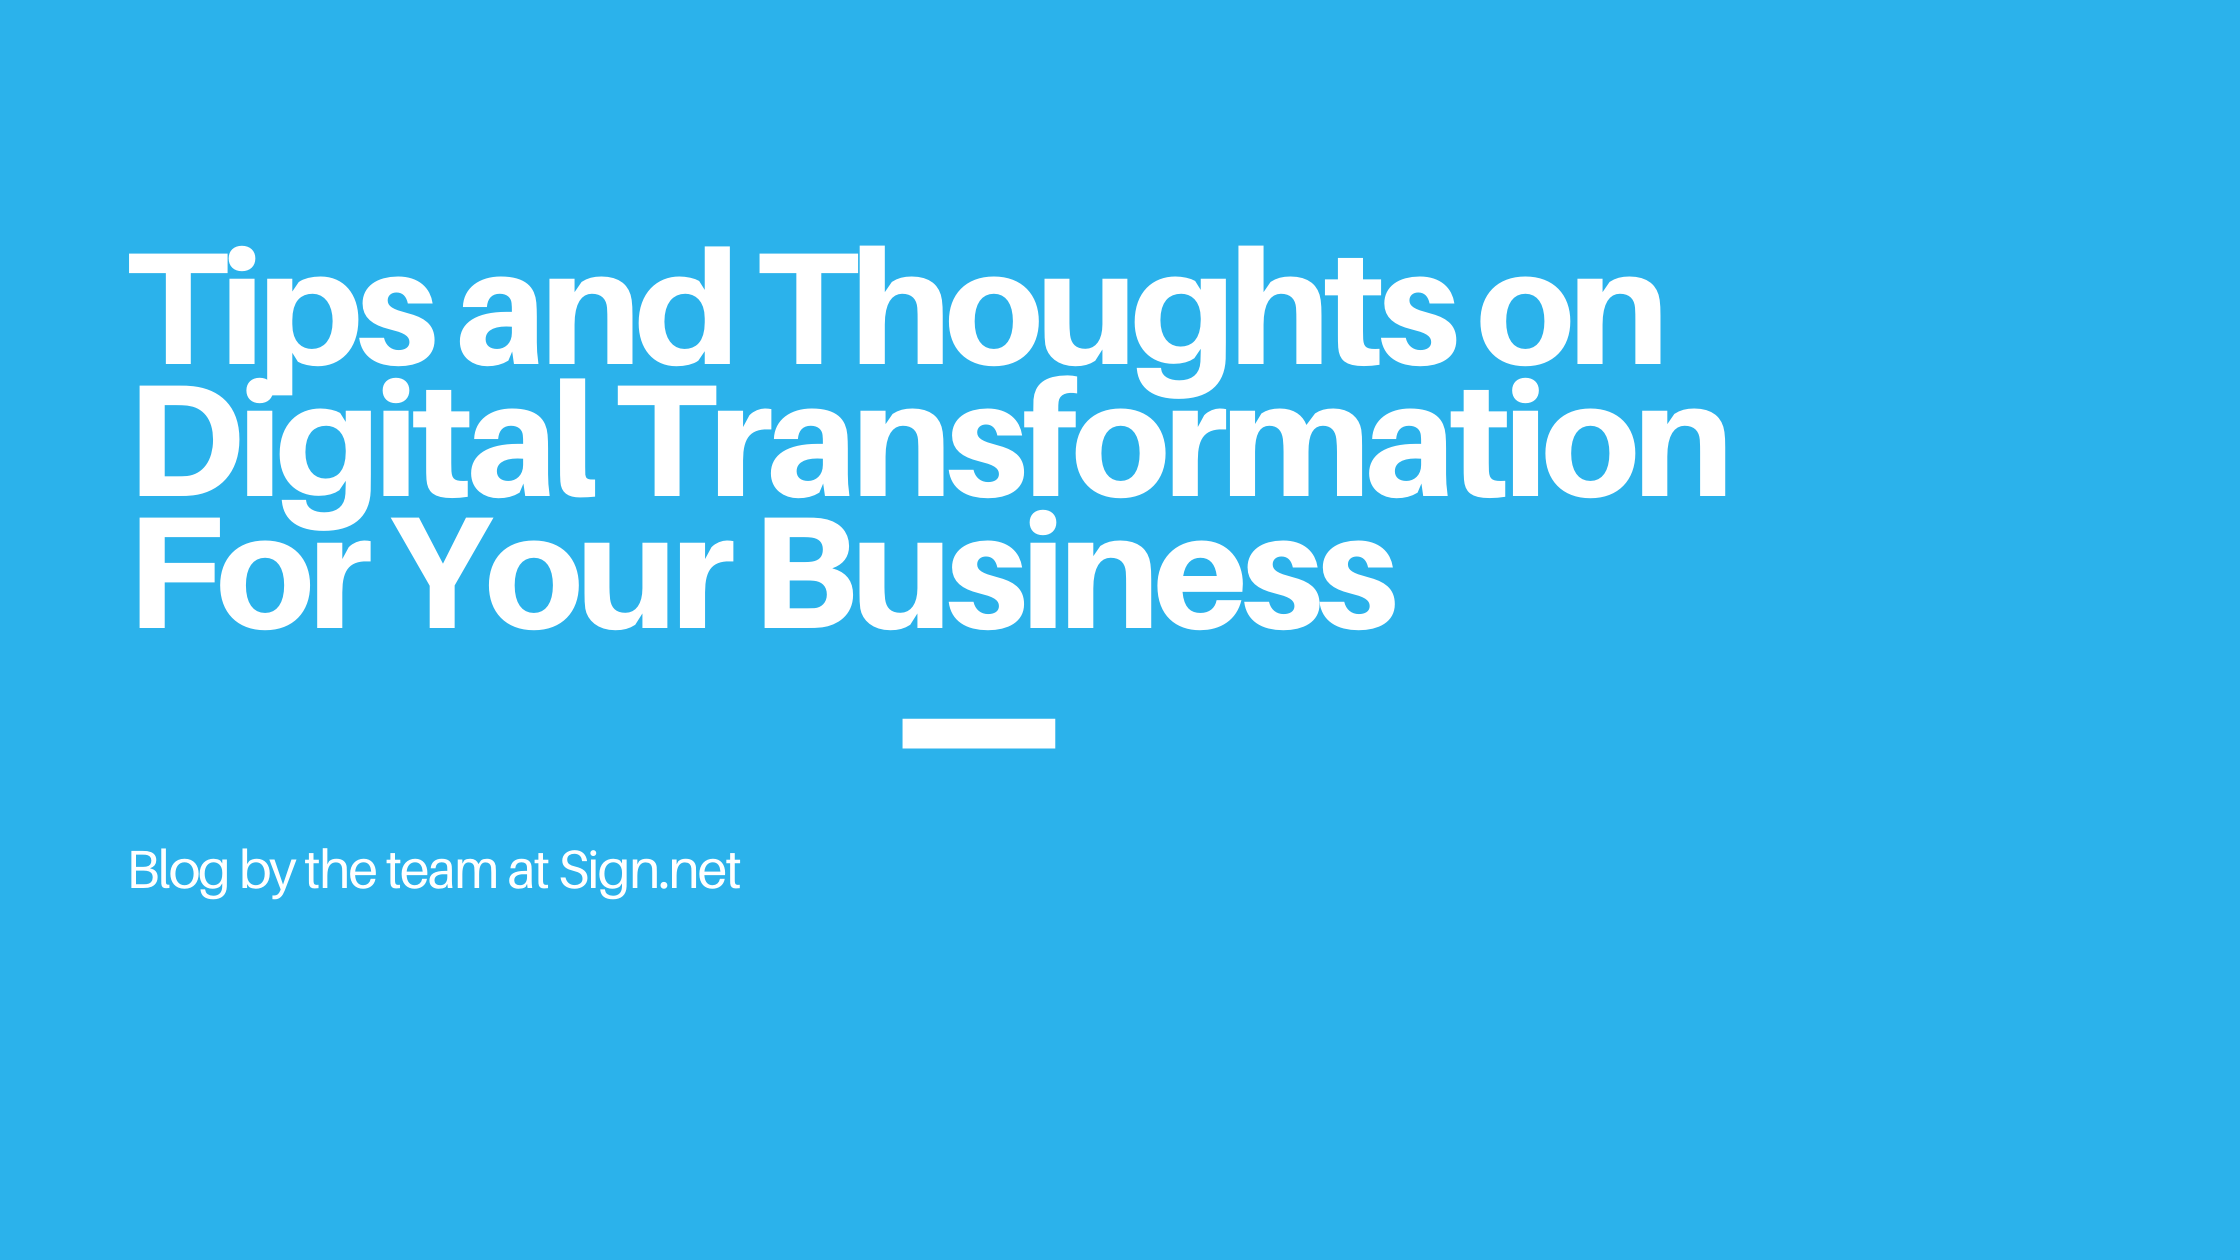 Tips and Thoughts on Digital Transformation of Your Business